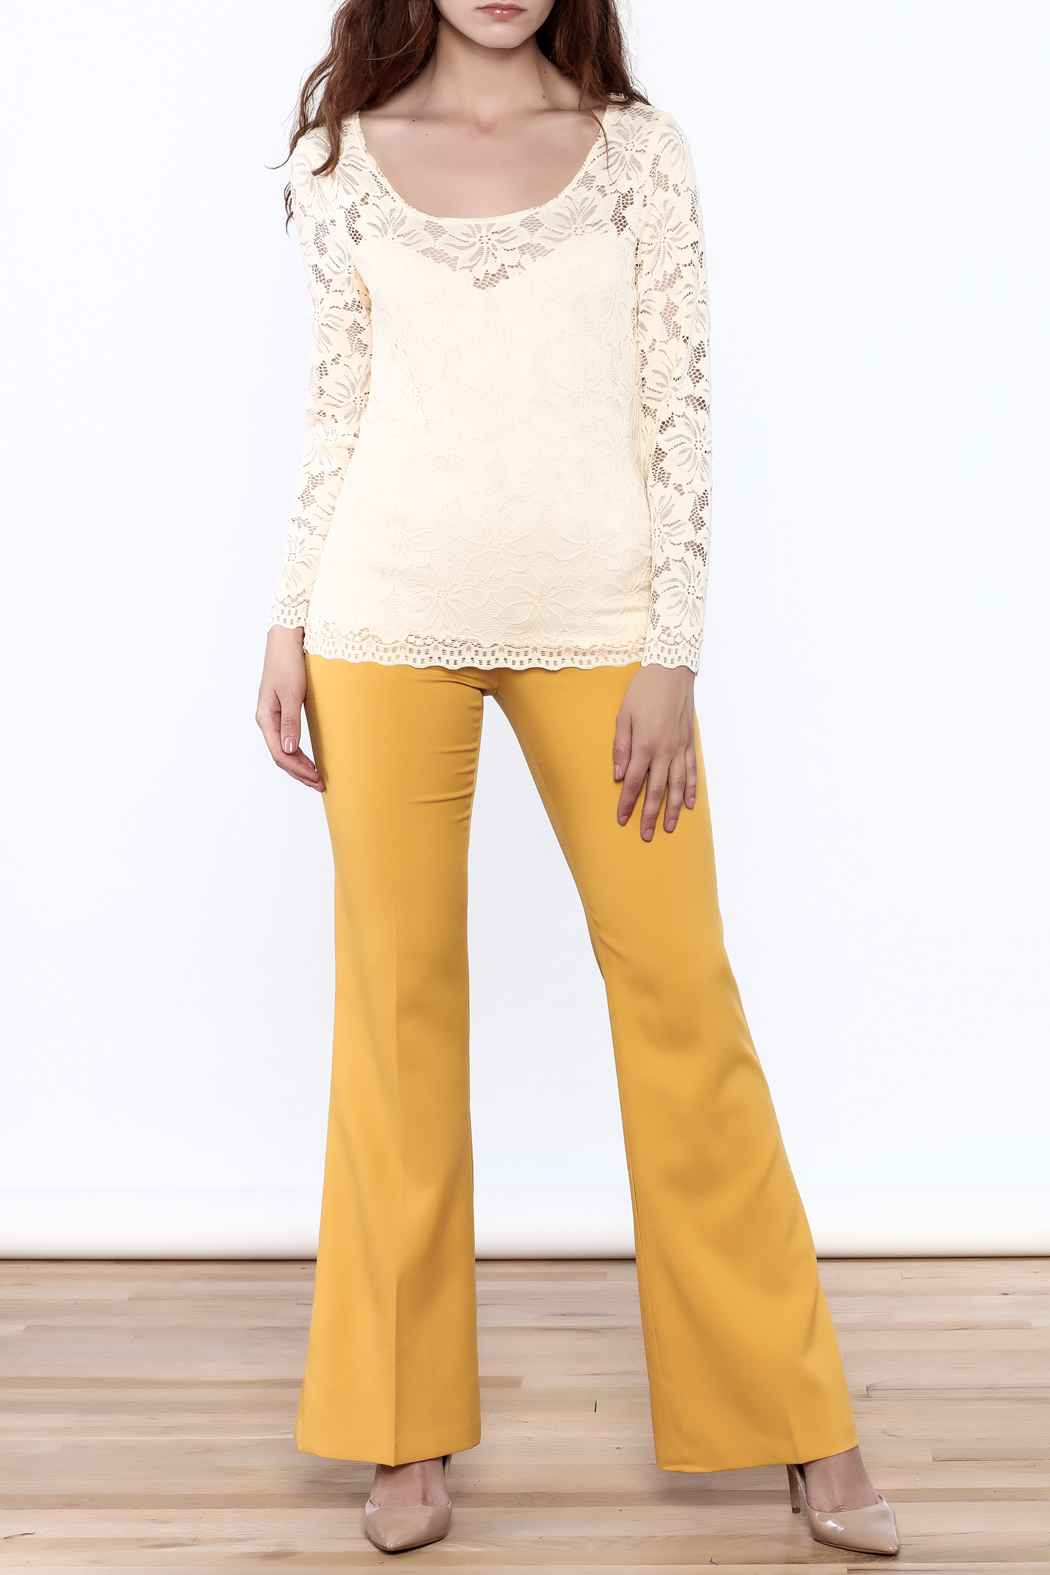 Sharon Max Ivory Lace Top - Front Full Image